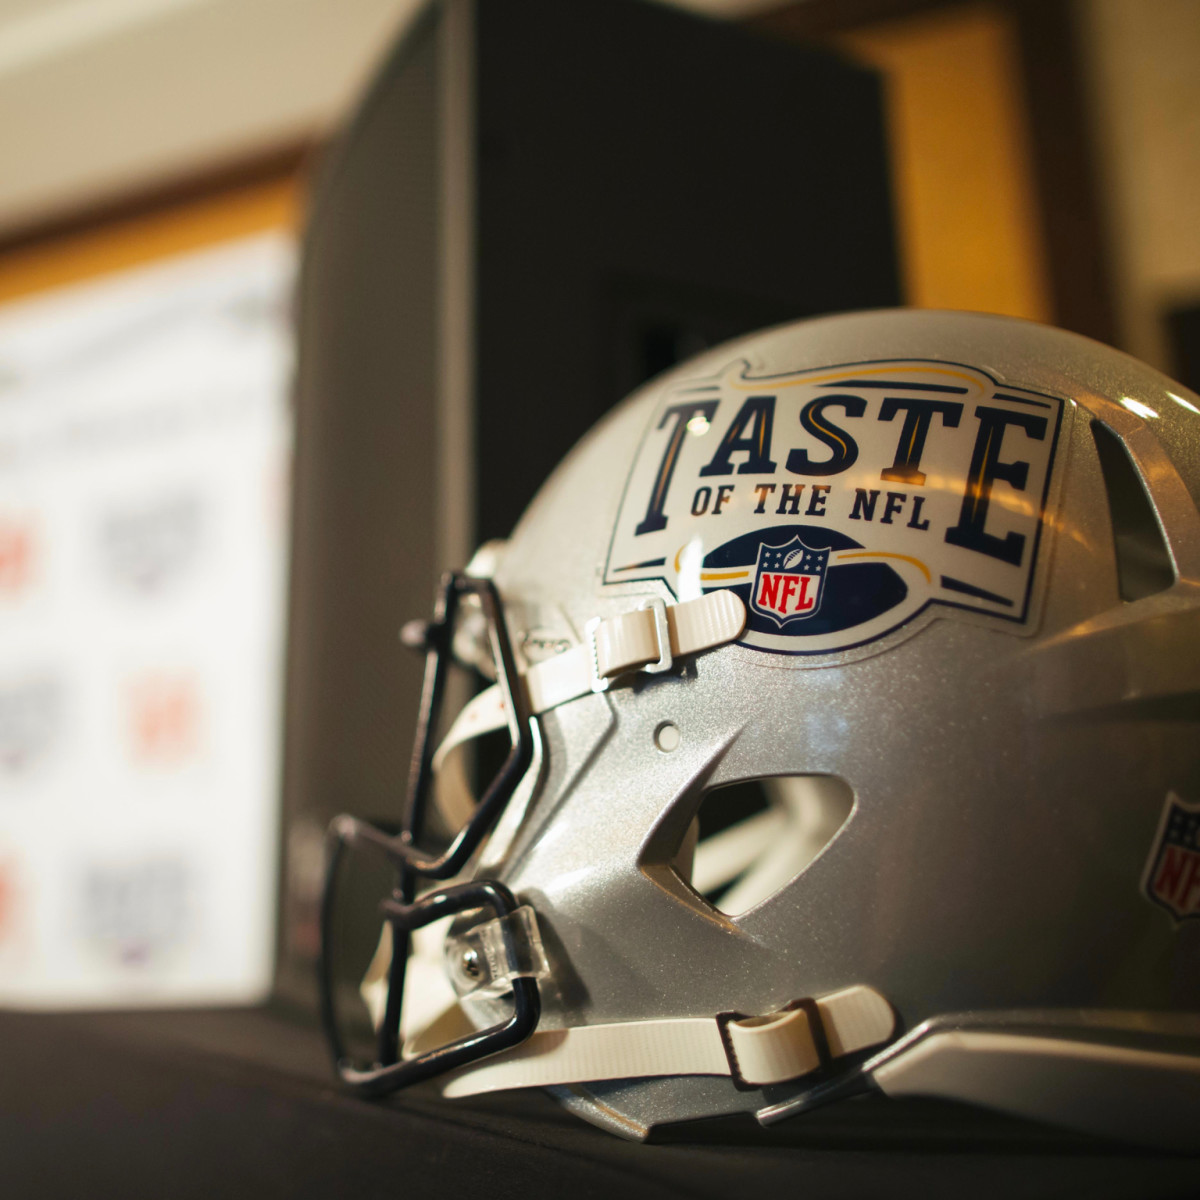 Taste of the NFL helmet